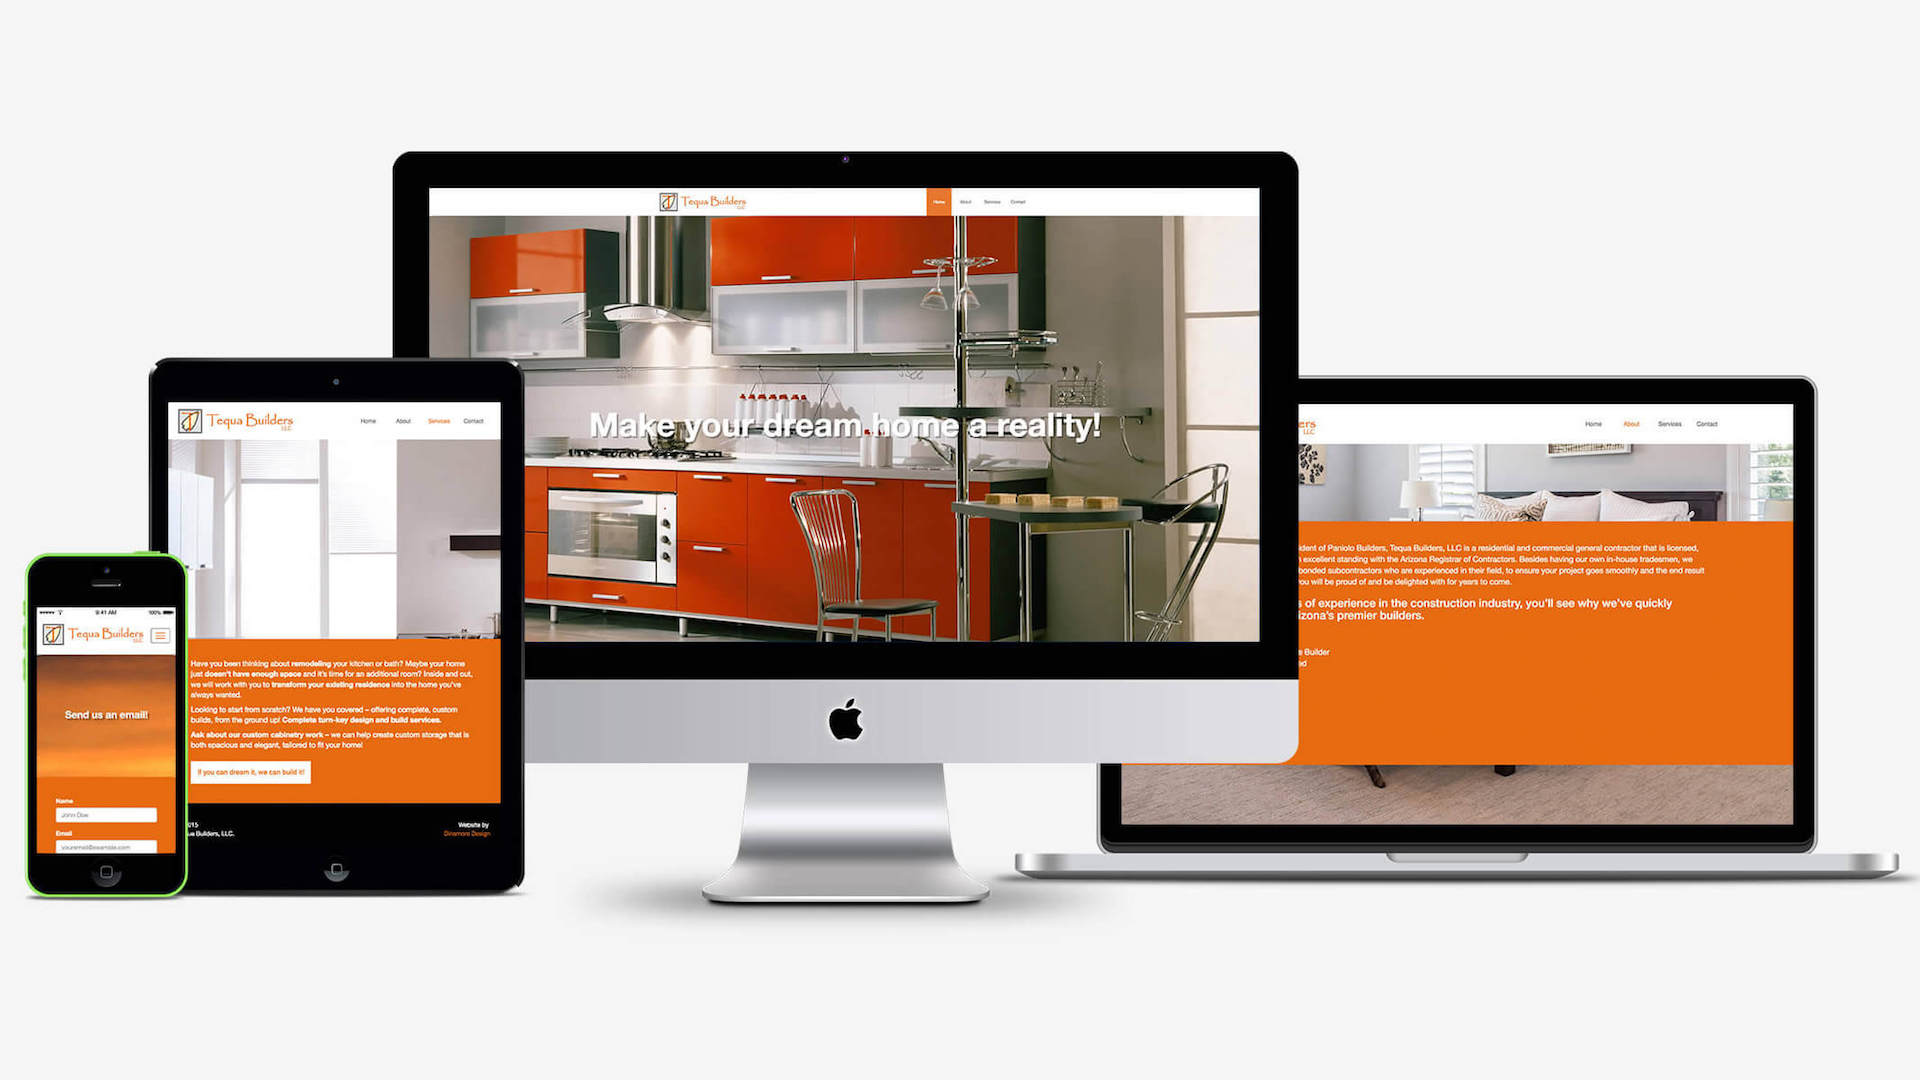 Tequa Builders | Website Redesign